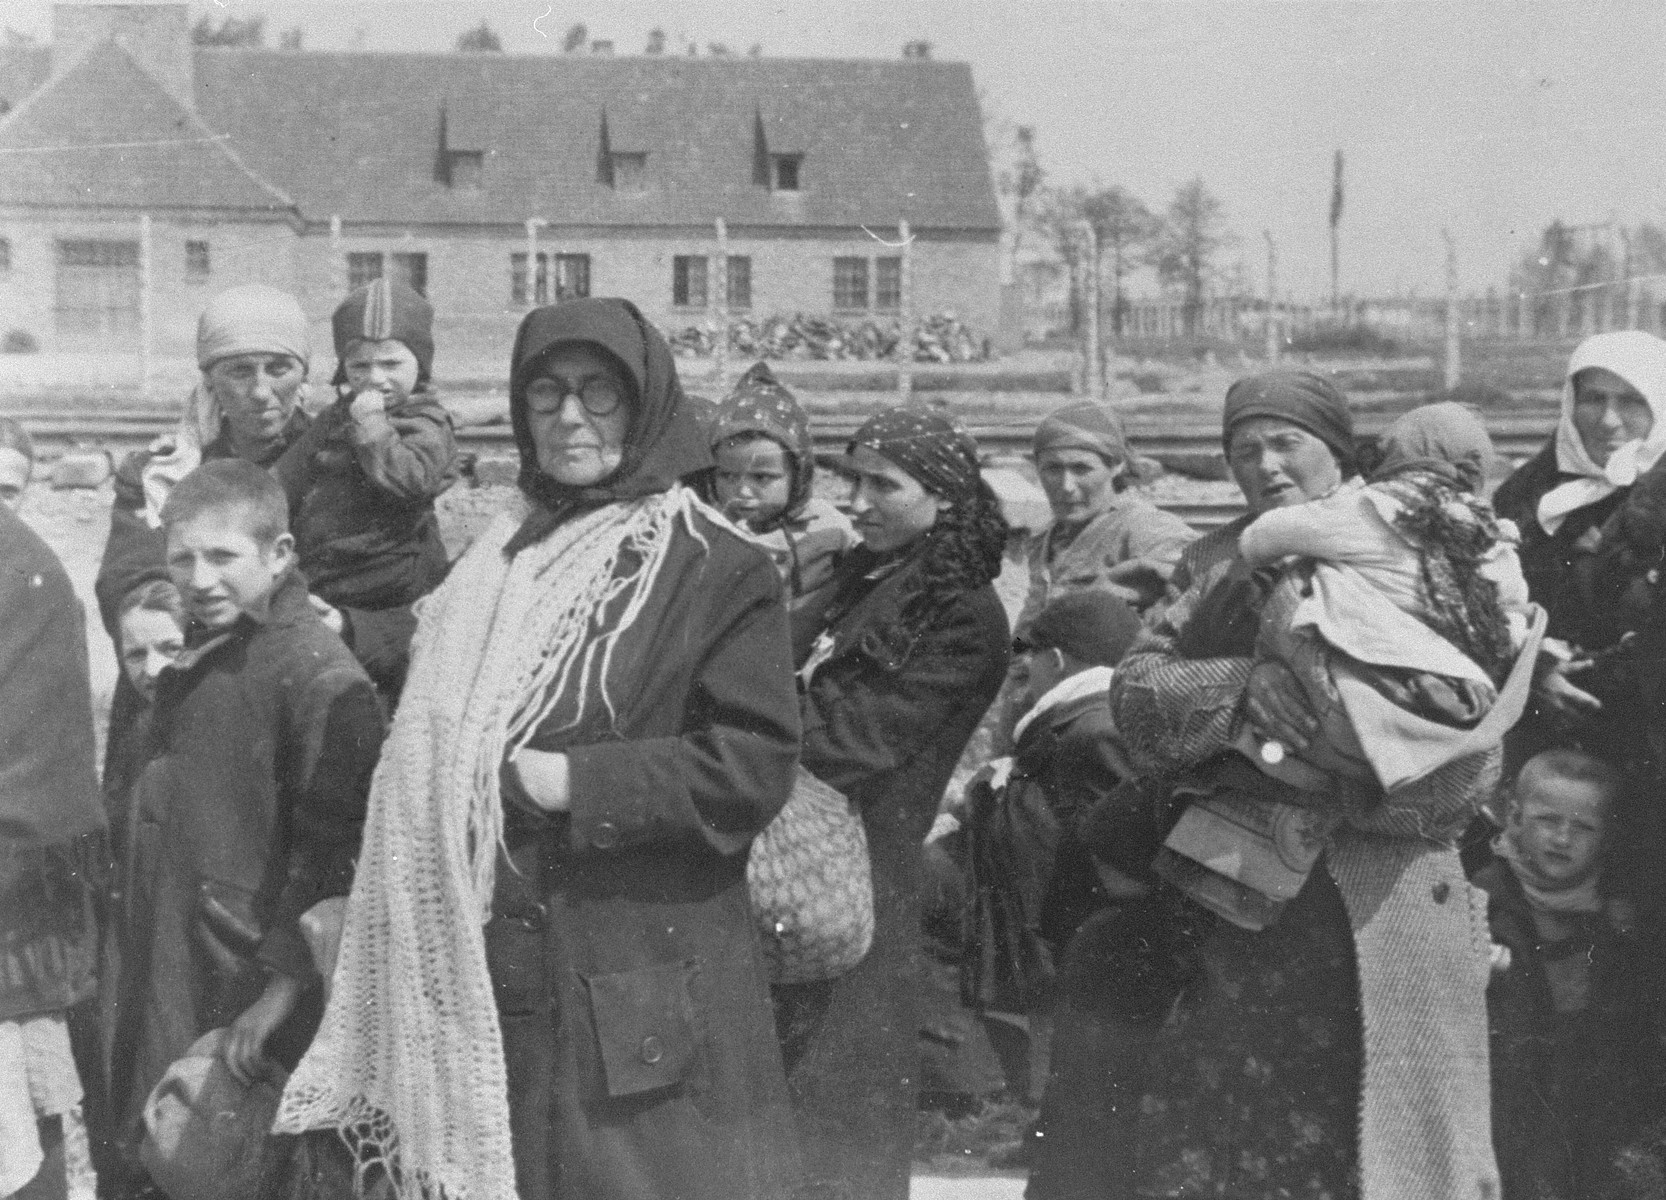 Jewish women and children from Subcarpathian Rus who have been selected for death at Auschwitz-Birkenau, walk toward the gas chambers.  The building in the background is crematorium III.   Those pictured include Iboja Hoffman of Bodrogkeresztur, her aunt Lena Egri, Ruth Hoffman (Iboja's sister), Malwin Hoffman (Iboja and Ruth's mother), Piroska Szaz of Tokaj (Lena and Malwin's sister), Piroska's daughter and Karcsi Szaz (Piroska's son).